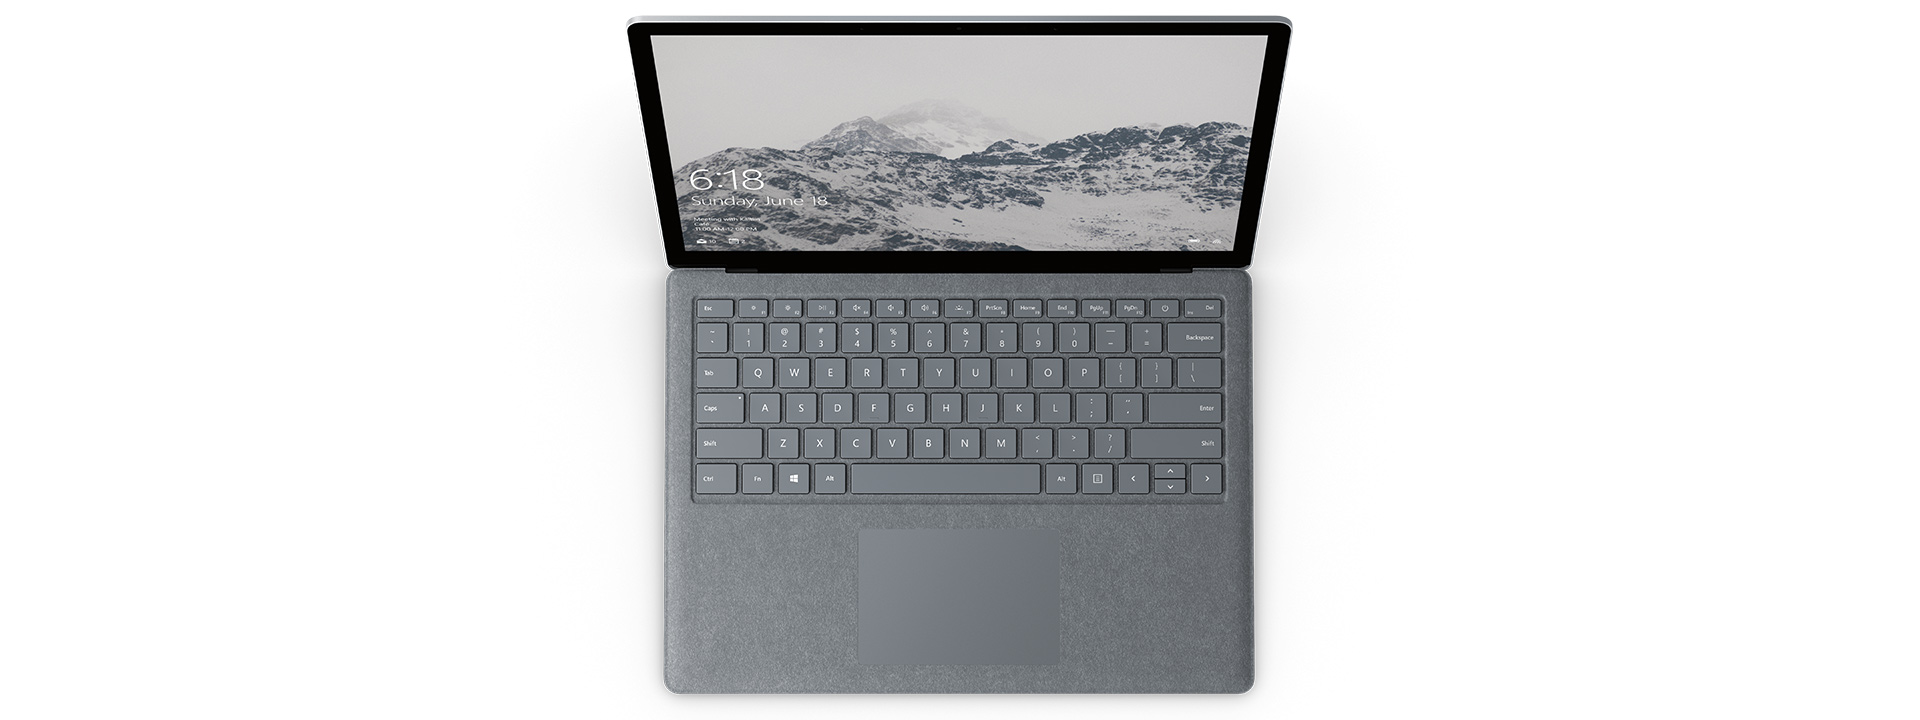 surface specification